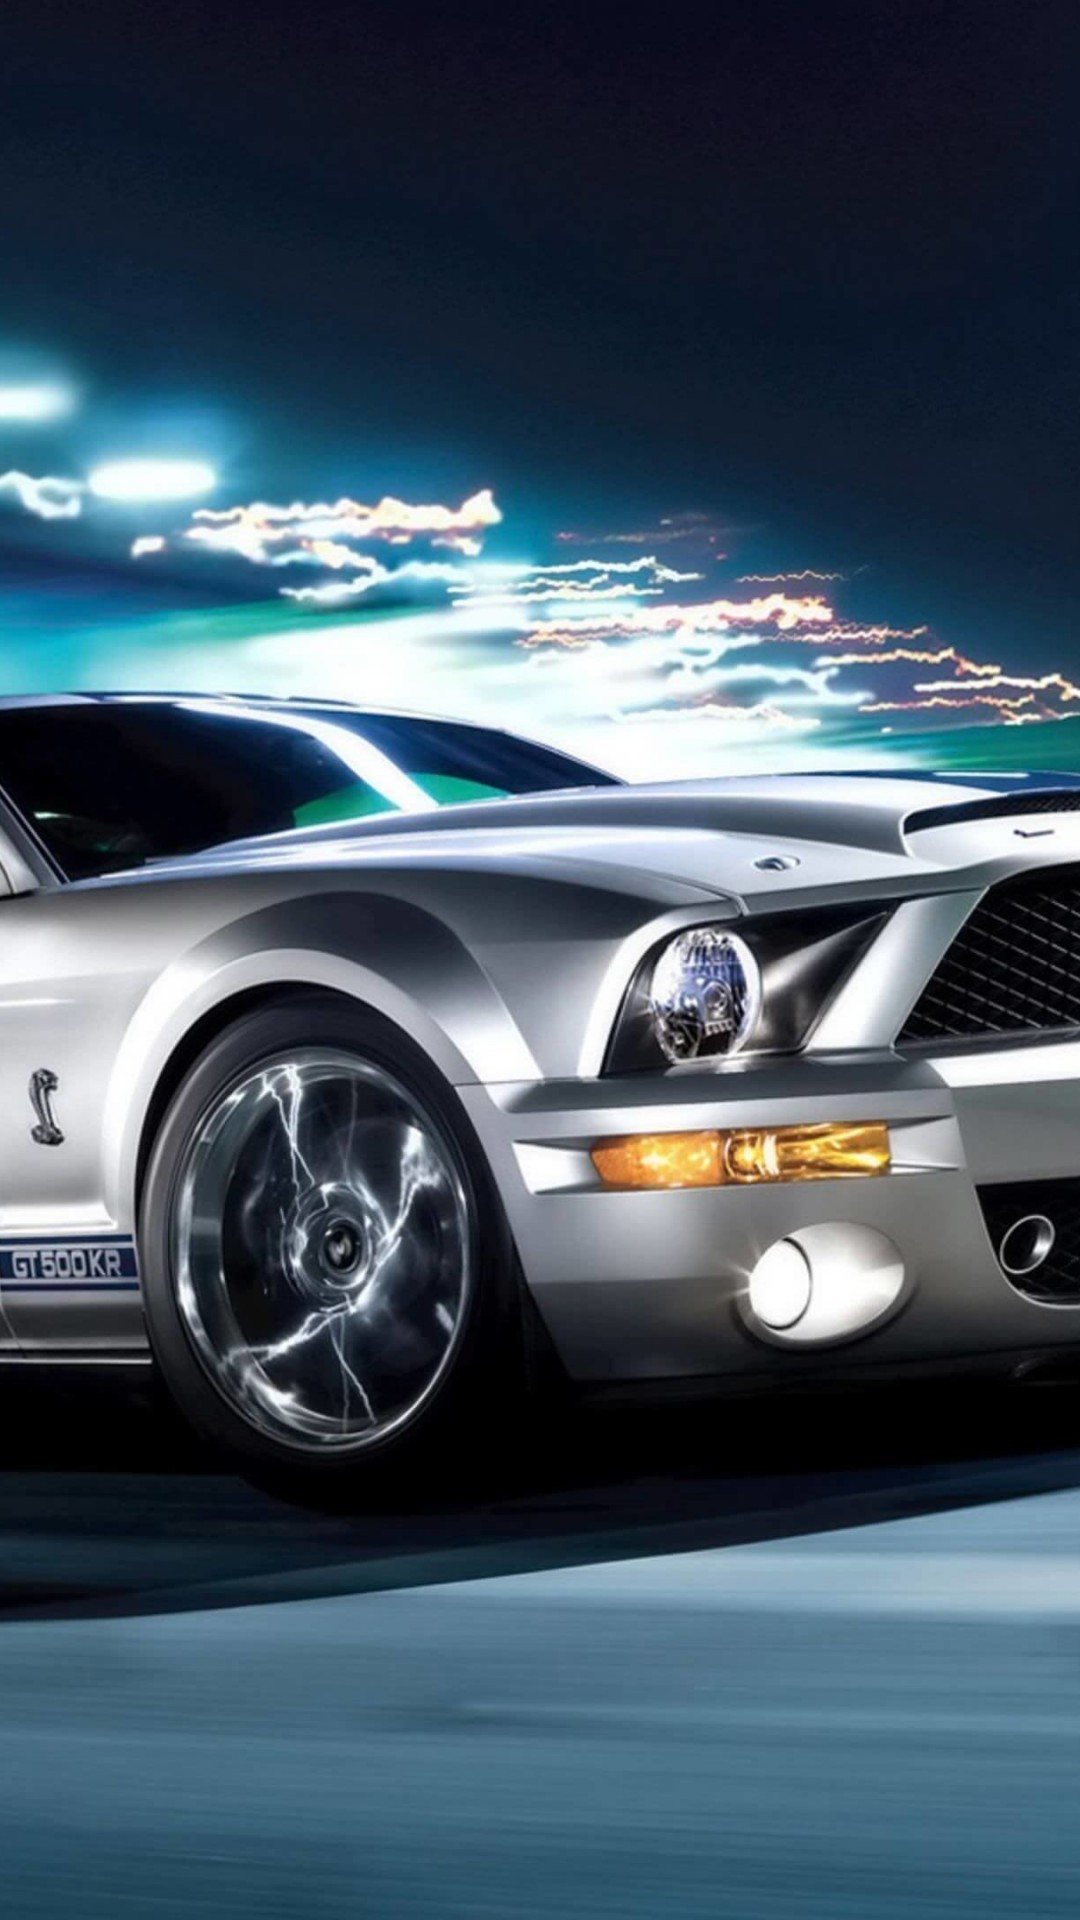 Ford Mustang Shelby GT500KR Wallpaper for Google Nexus 5X